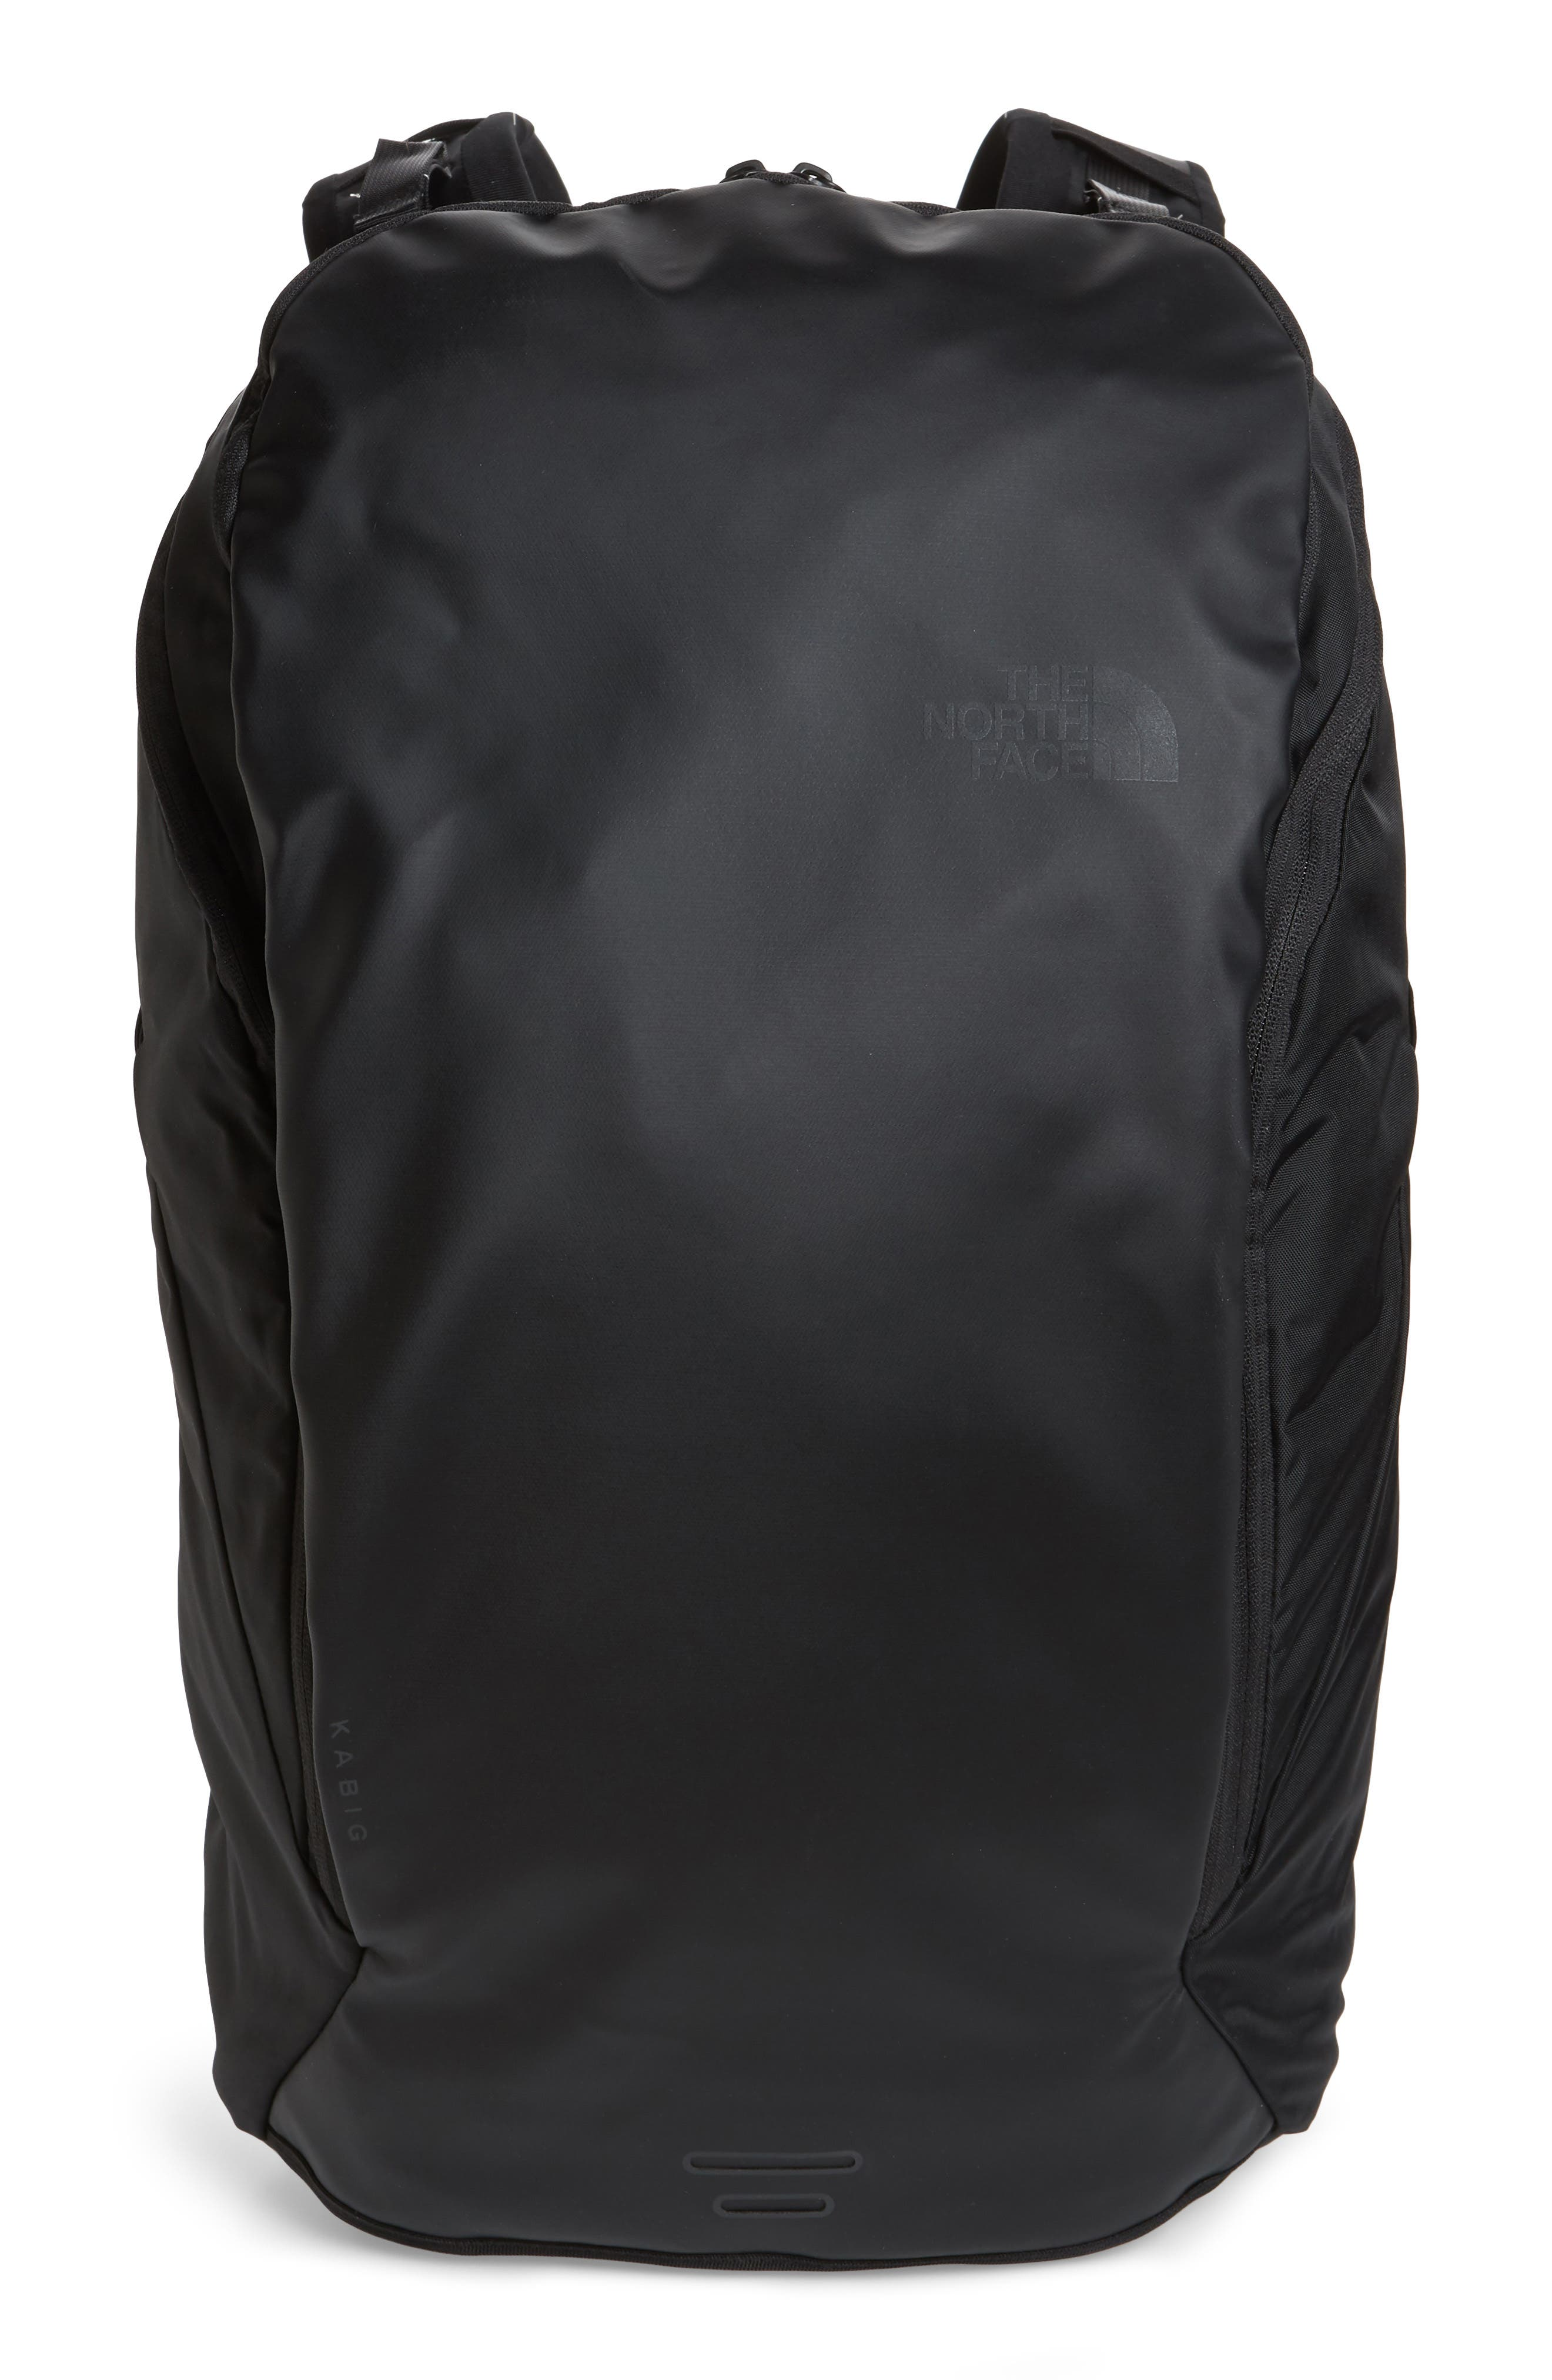 THE NORTH FACE Kabig Backpack, Main, color, 001